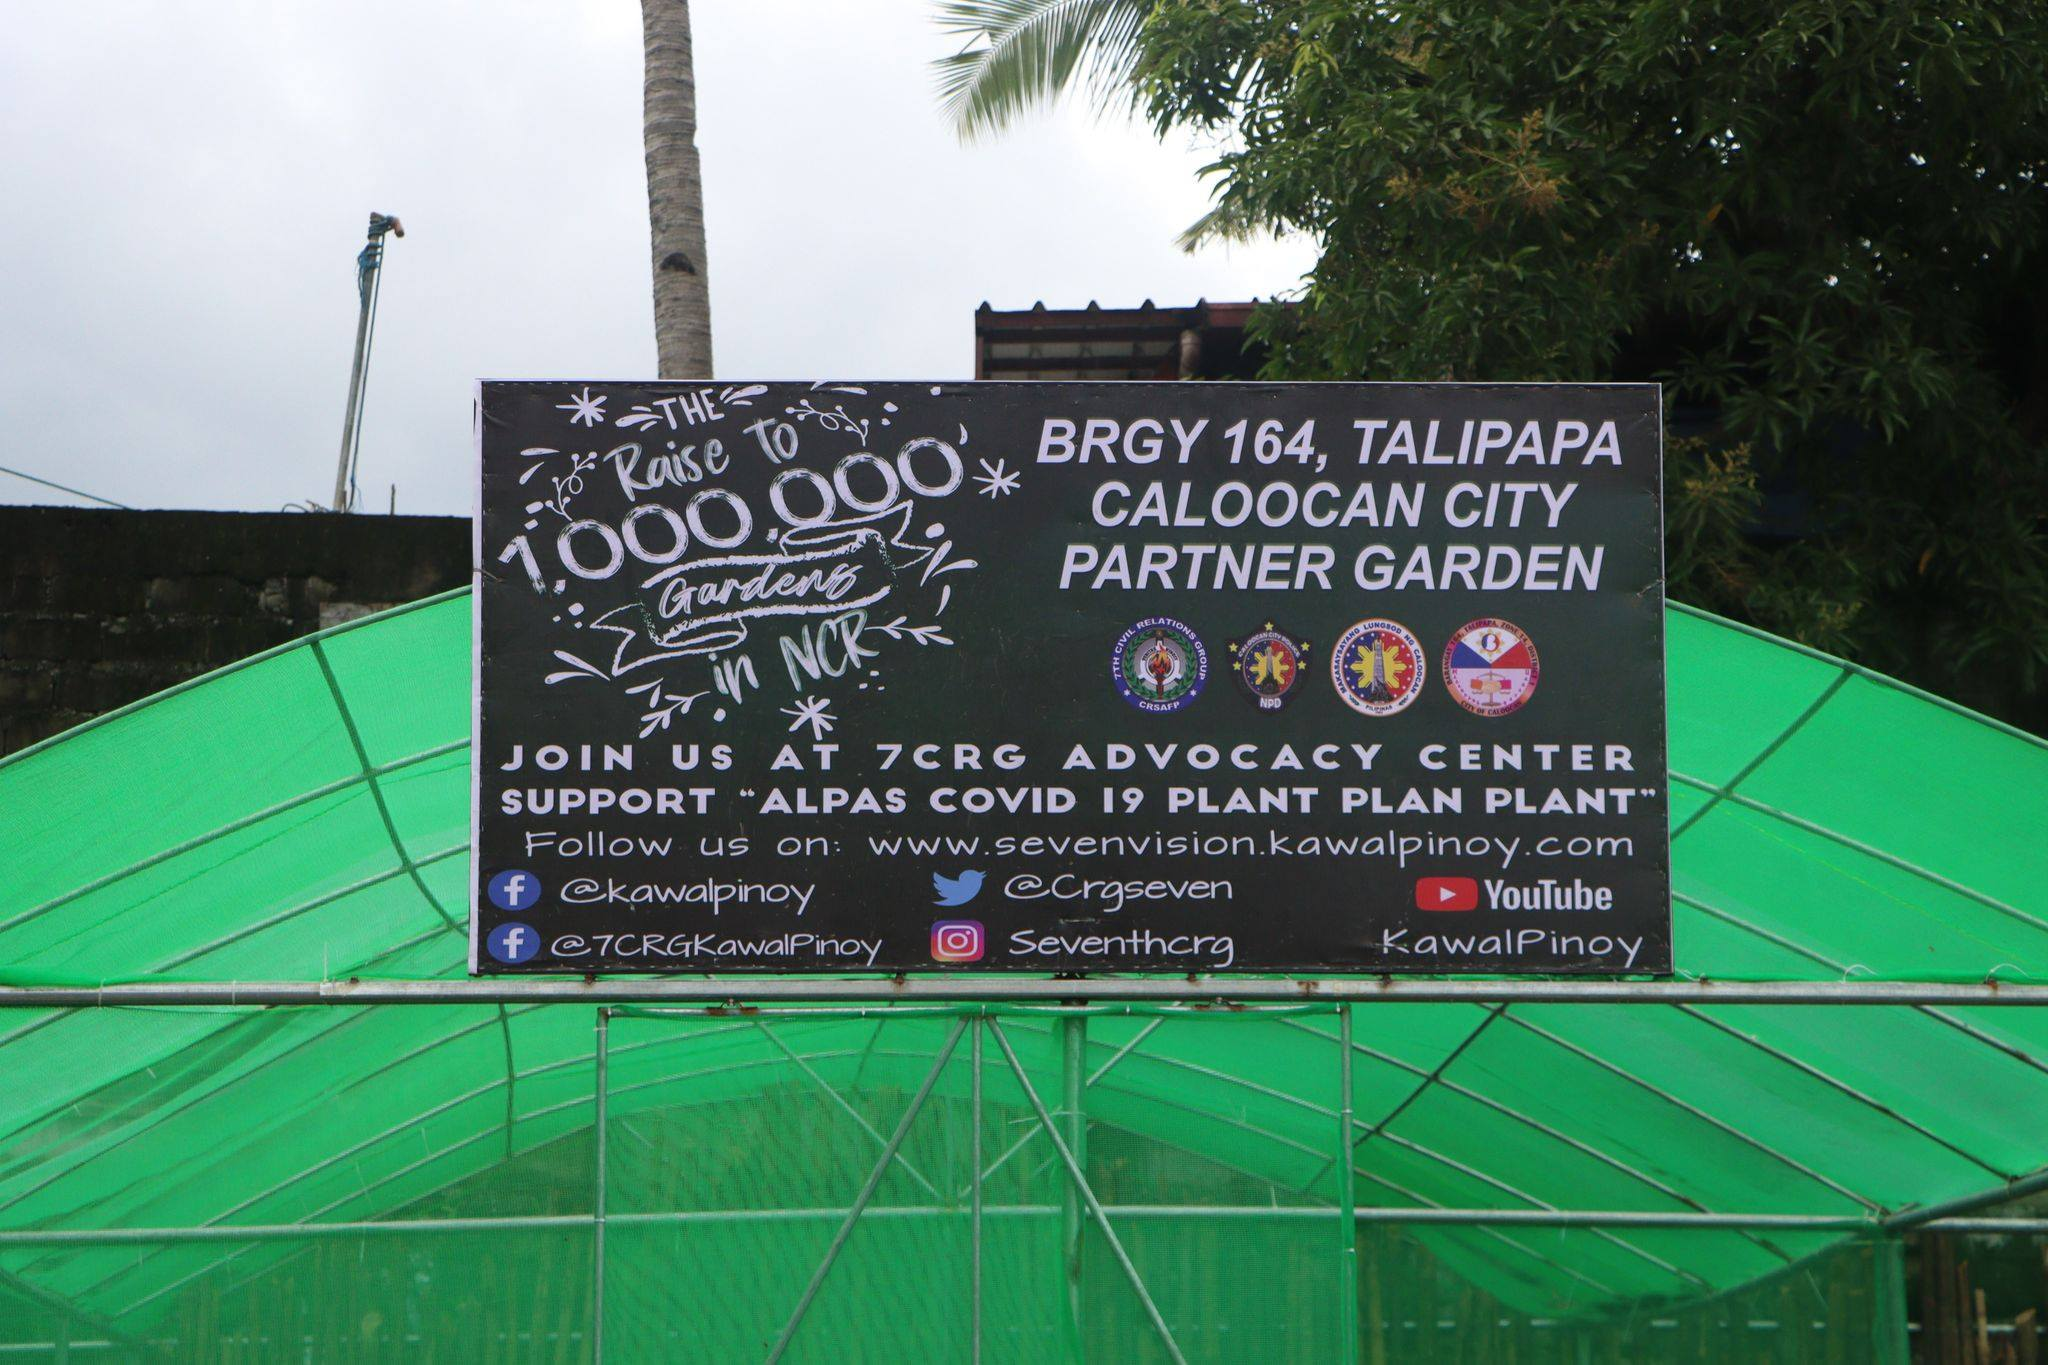 Come and Visit the Community Garden at Brgy. 164 Talipapa Caloocan City